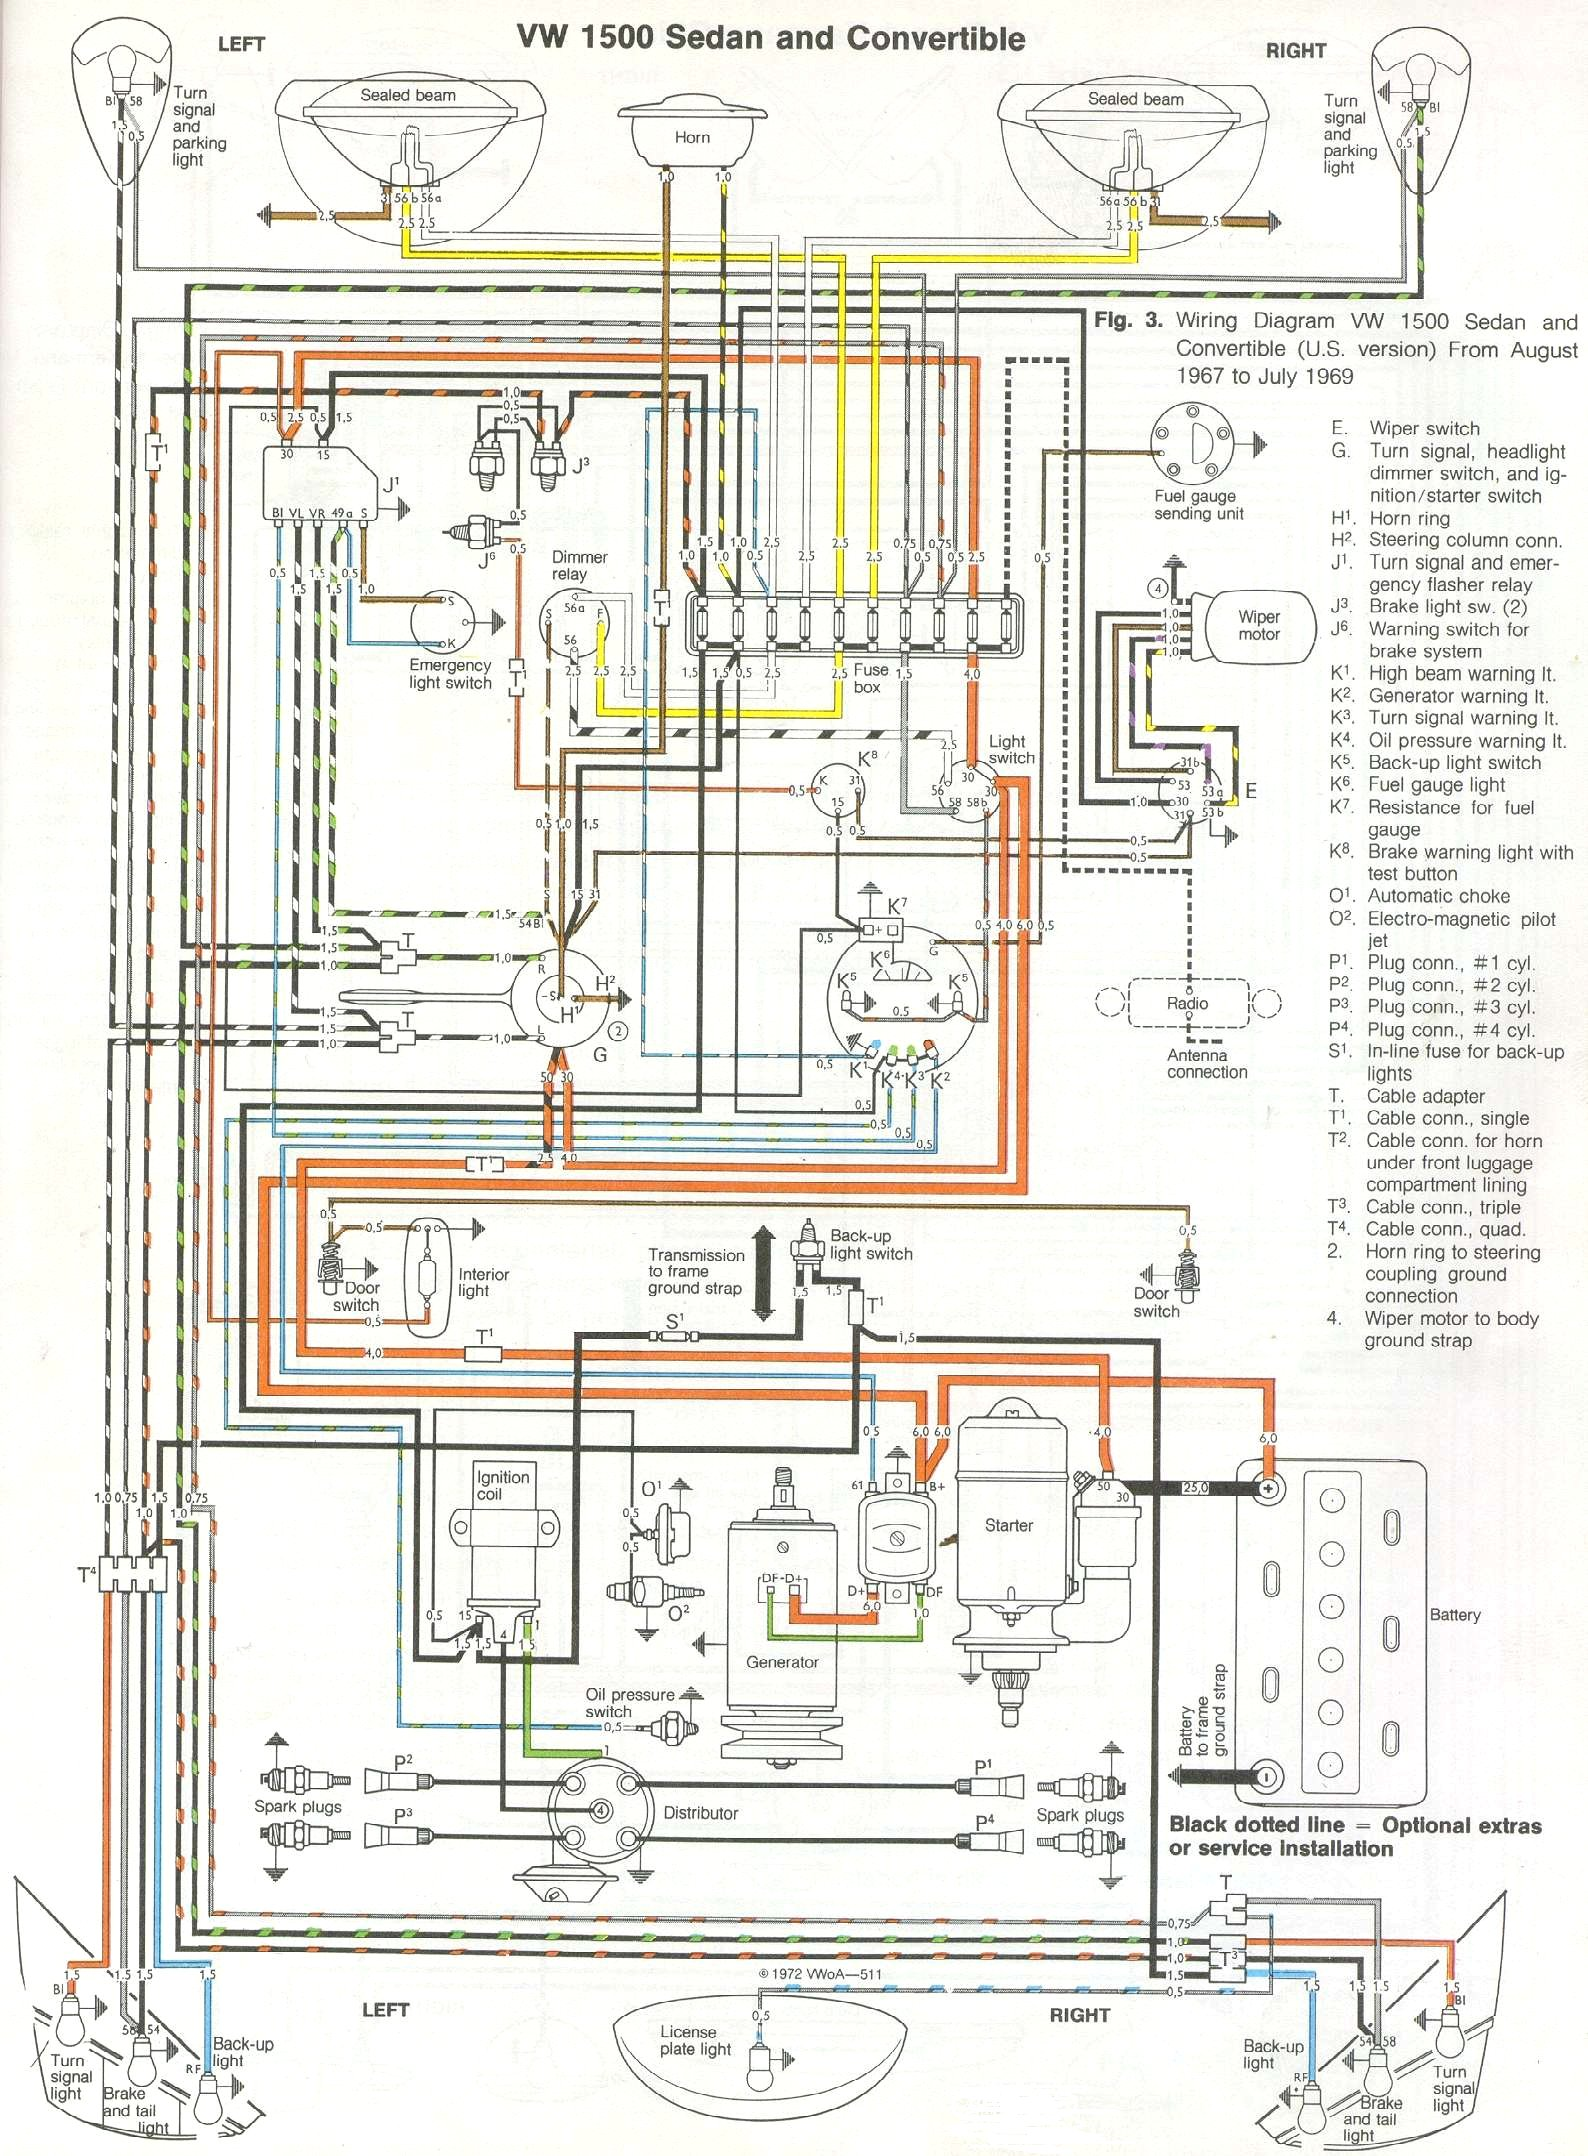 bug_6869 vw wiring harness diagram cj7 wiring harness diagram \u2022 wiring vw type 3 wiring harness at aneh.co